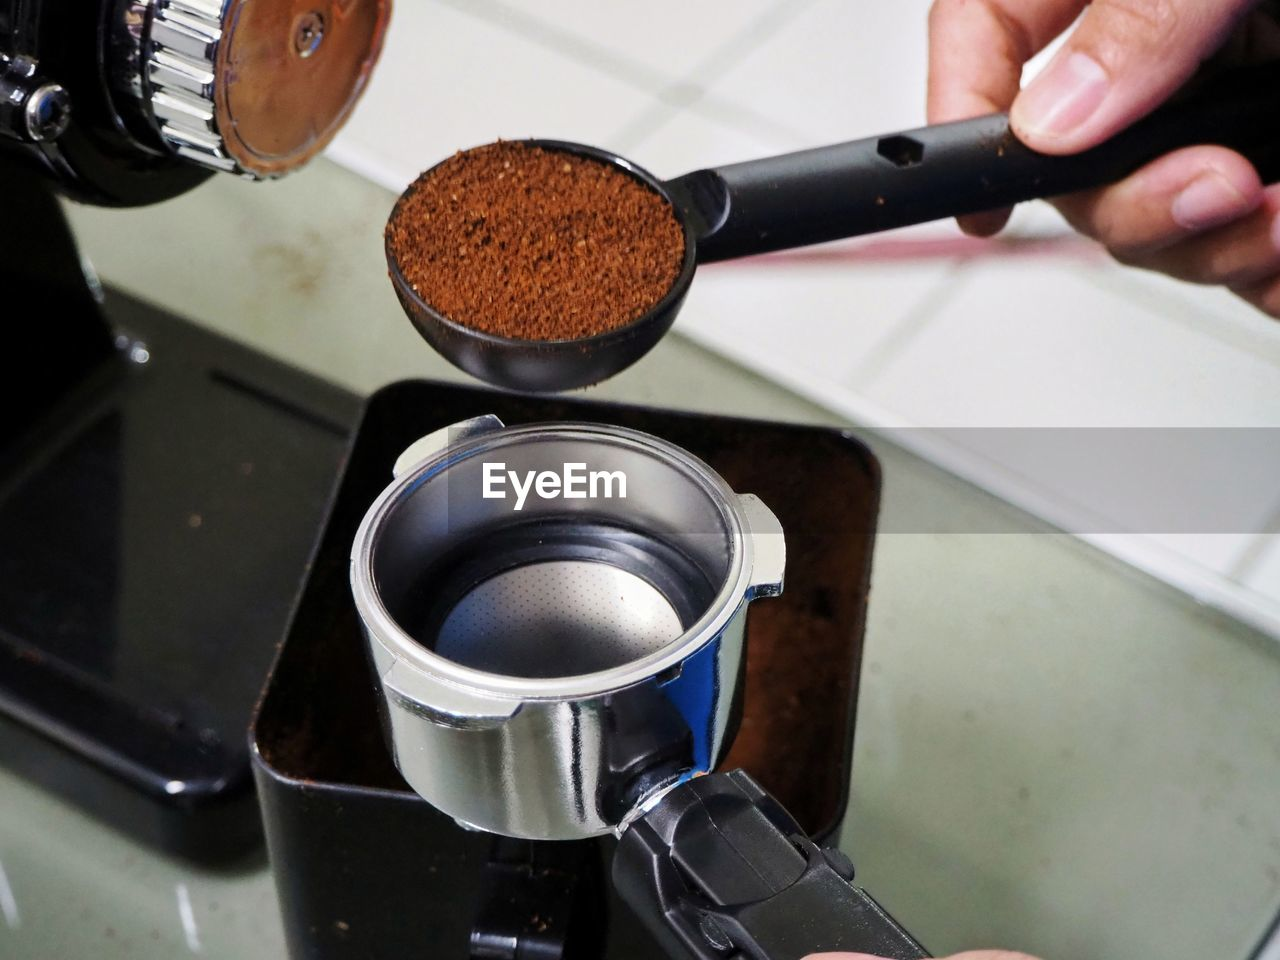 human hand, one person, preparation, hand, appliance, holding, food and drink, indoors, human body part, real people, coffee, ground coffee, coffee - drink, freshness, close-up, lifestyles, drink, focus on foreground, body part, finger, preparing food